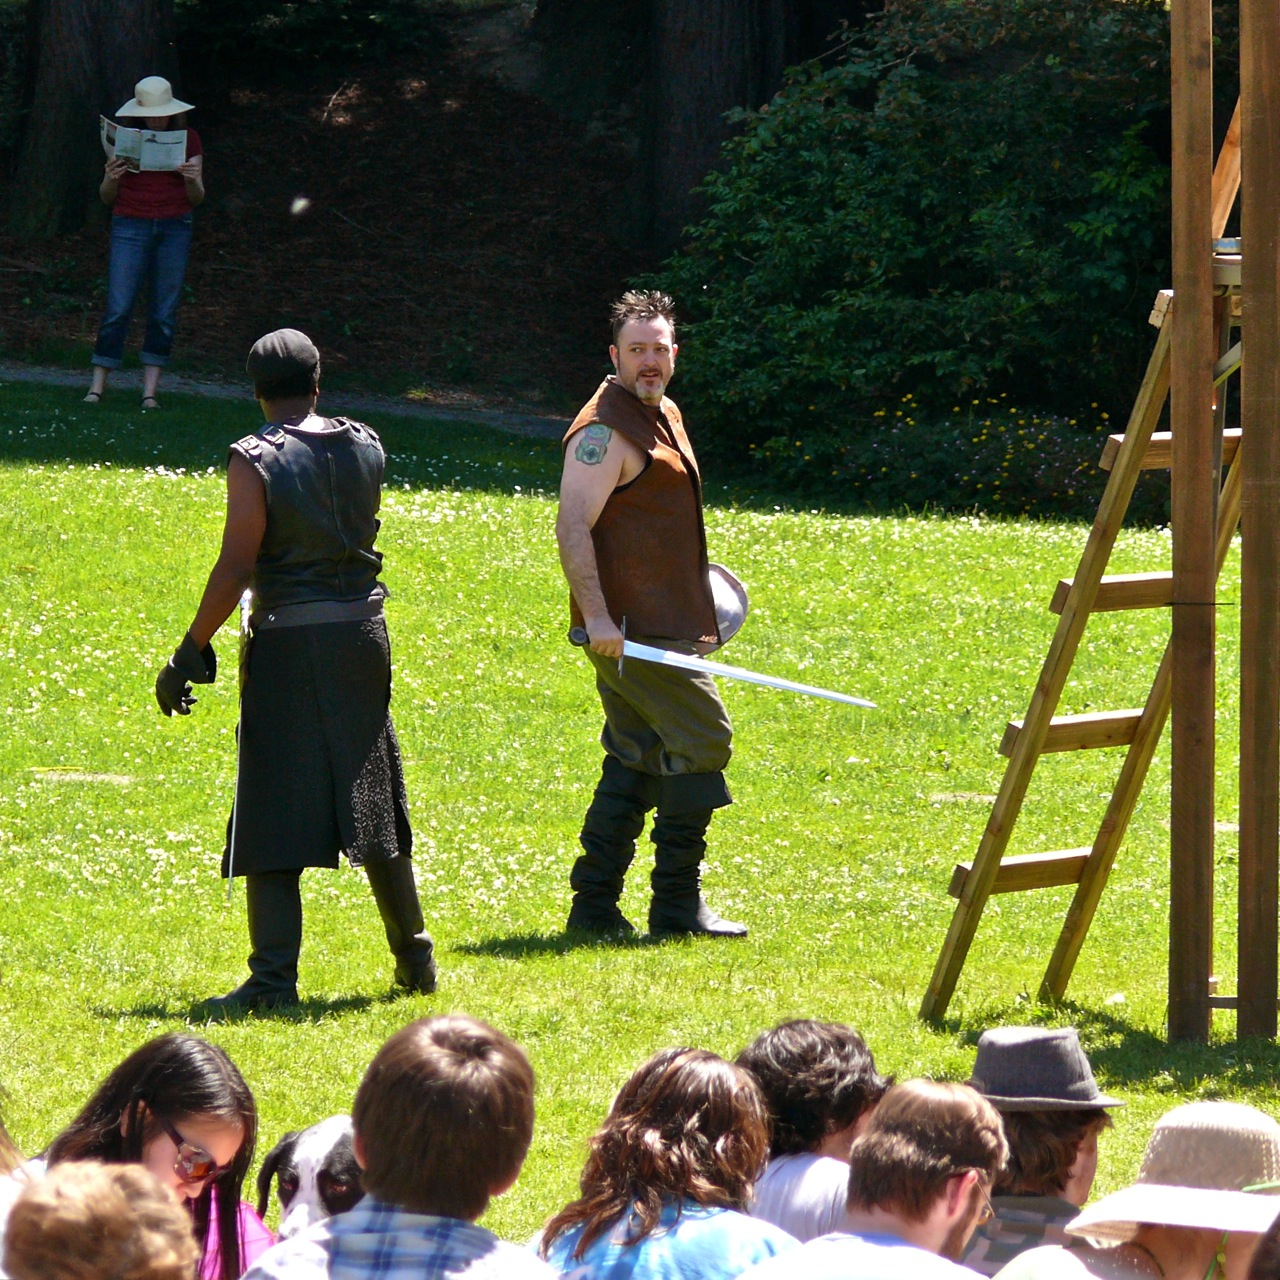 Chs Pics A Sunny Scottish Play With Shakespeare In Volunteer Park